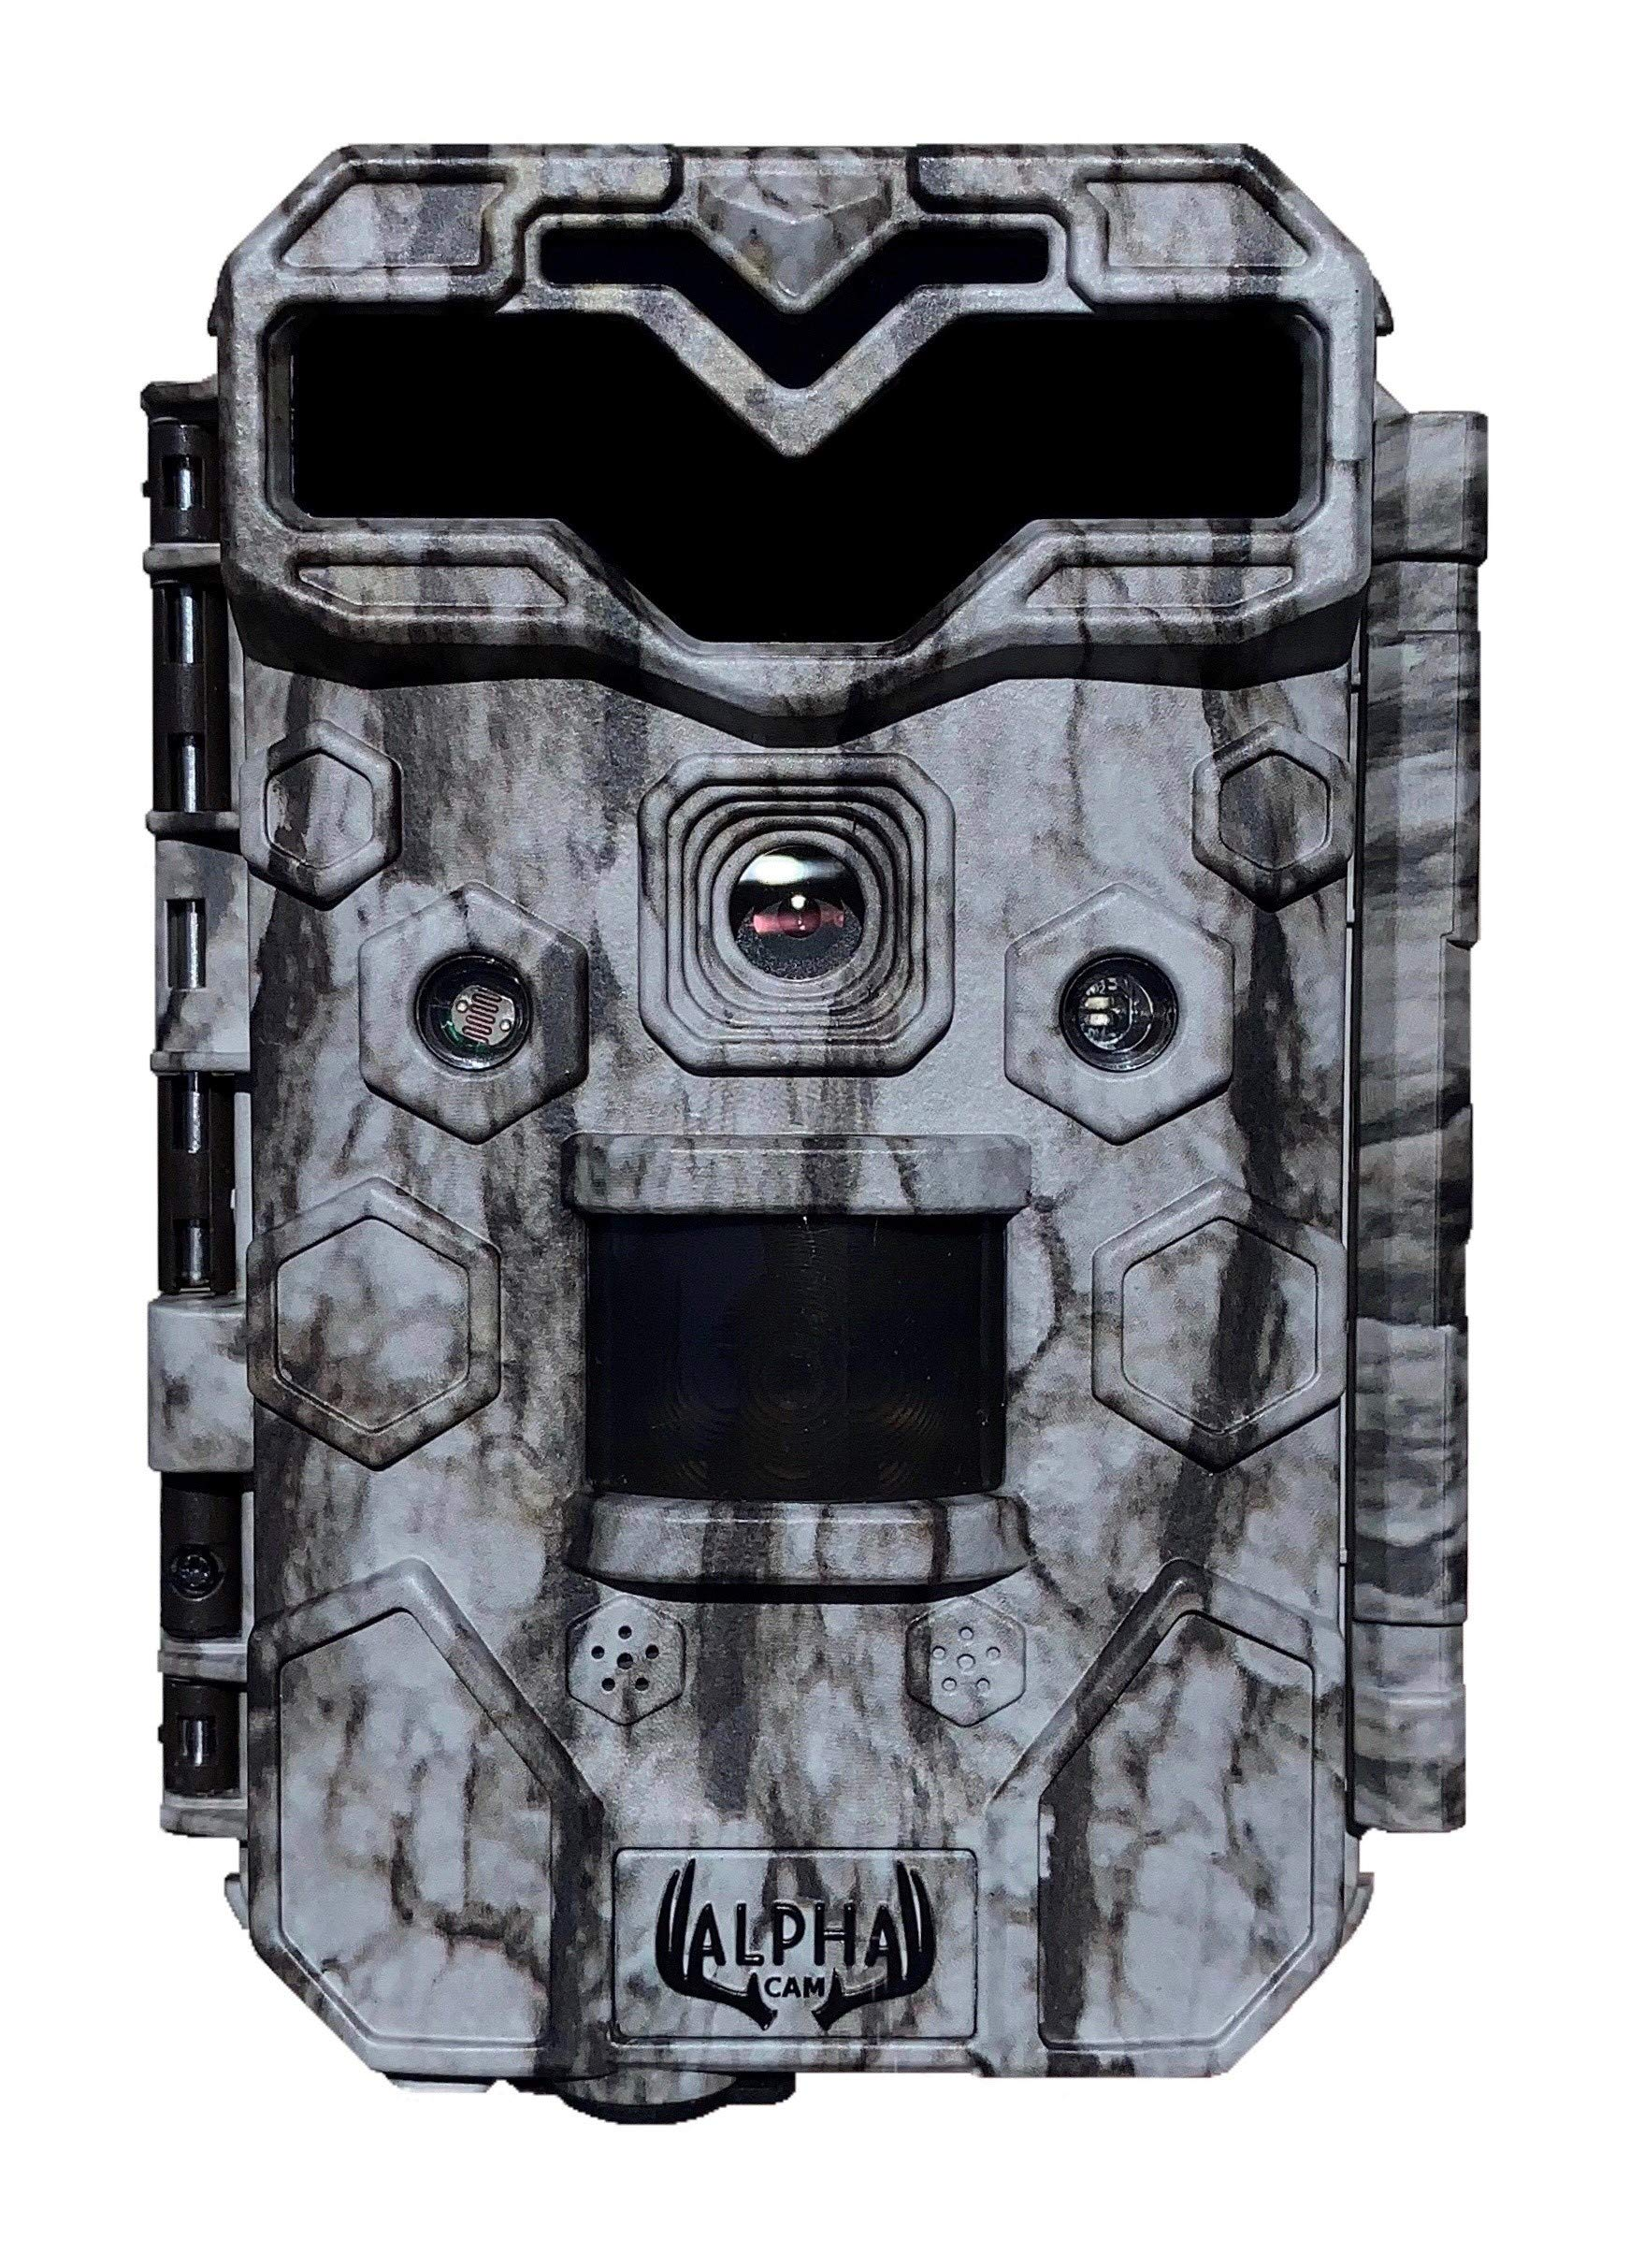 Alpha Cam Premium Hunting Trail Camera 30MP 1080p H.264 30fps Waterproof Scouting Cam with Ultra Fast Trigger Speed and Recovery Rate HD Long Range IR Night Vision 2.4'' LCD by Alpha Cam